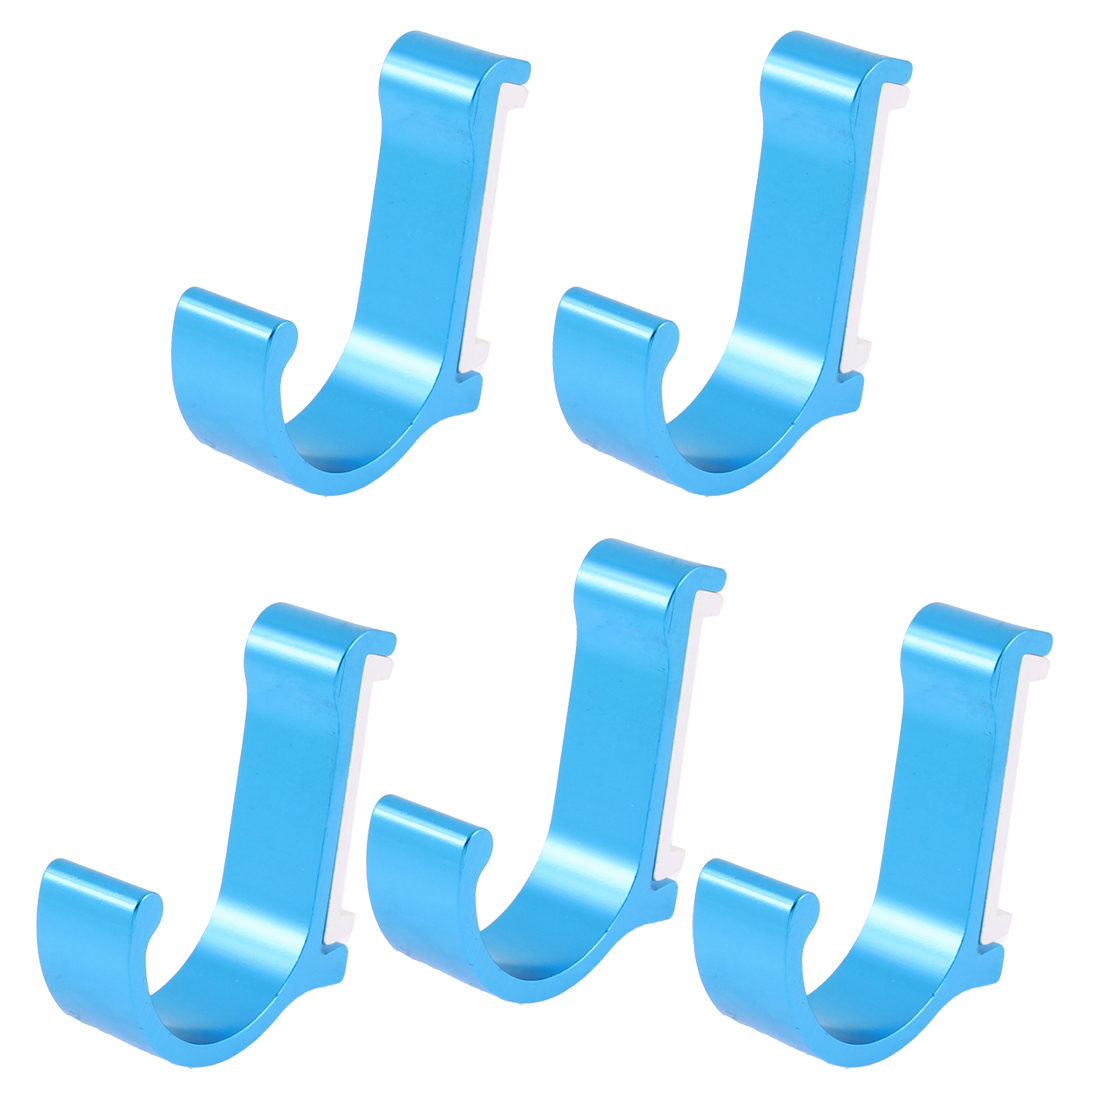 5pcs Utility Modern Blue Wall Hooks for Hanging Coats Garment Bags